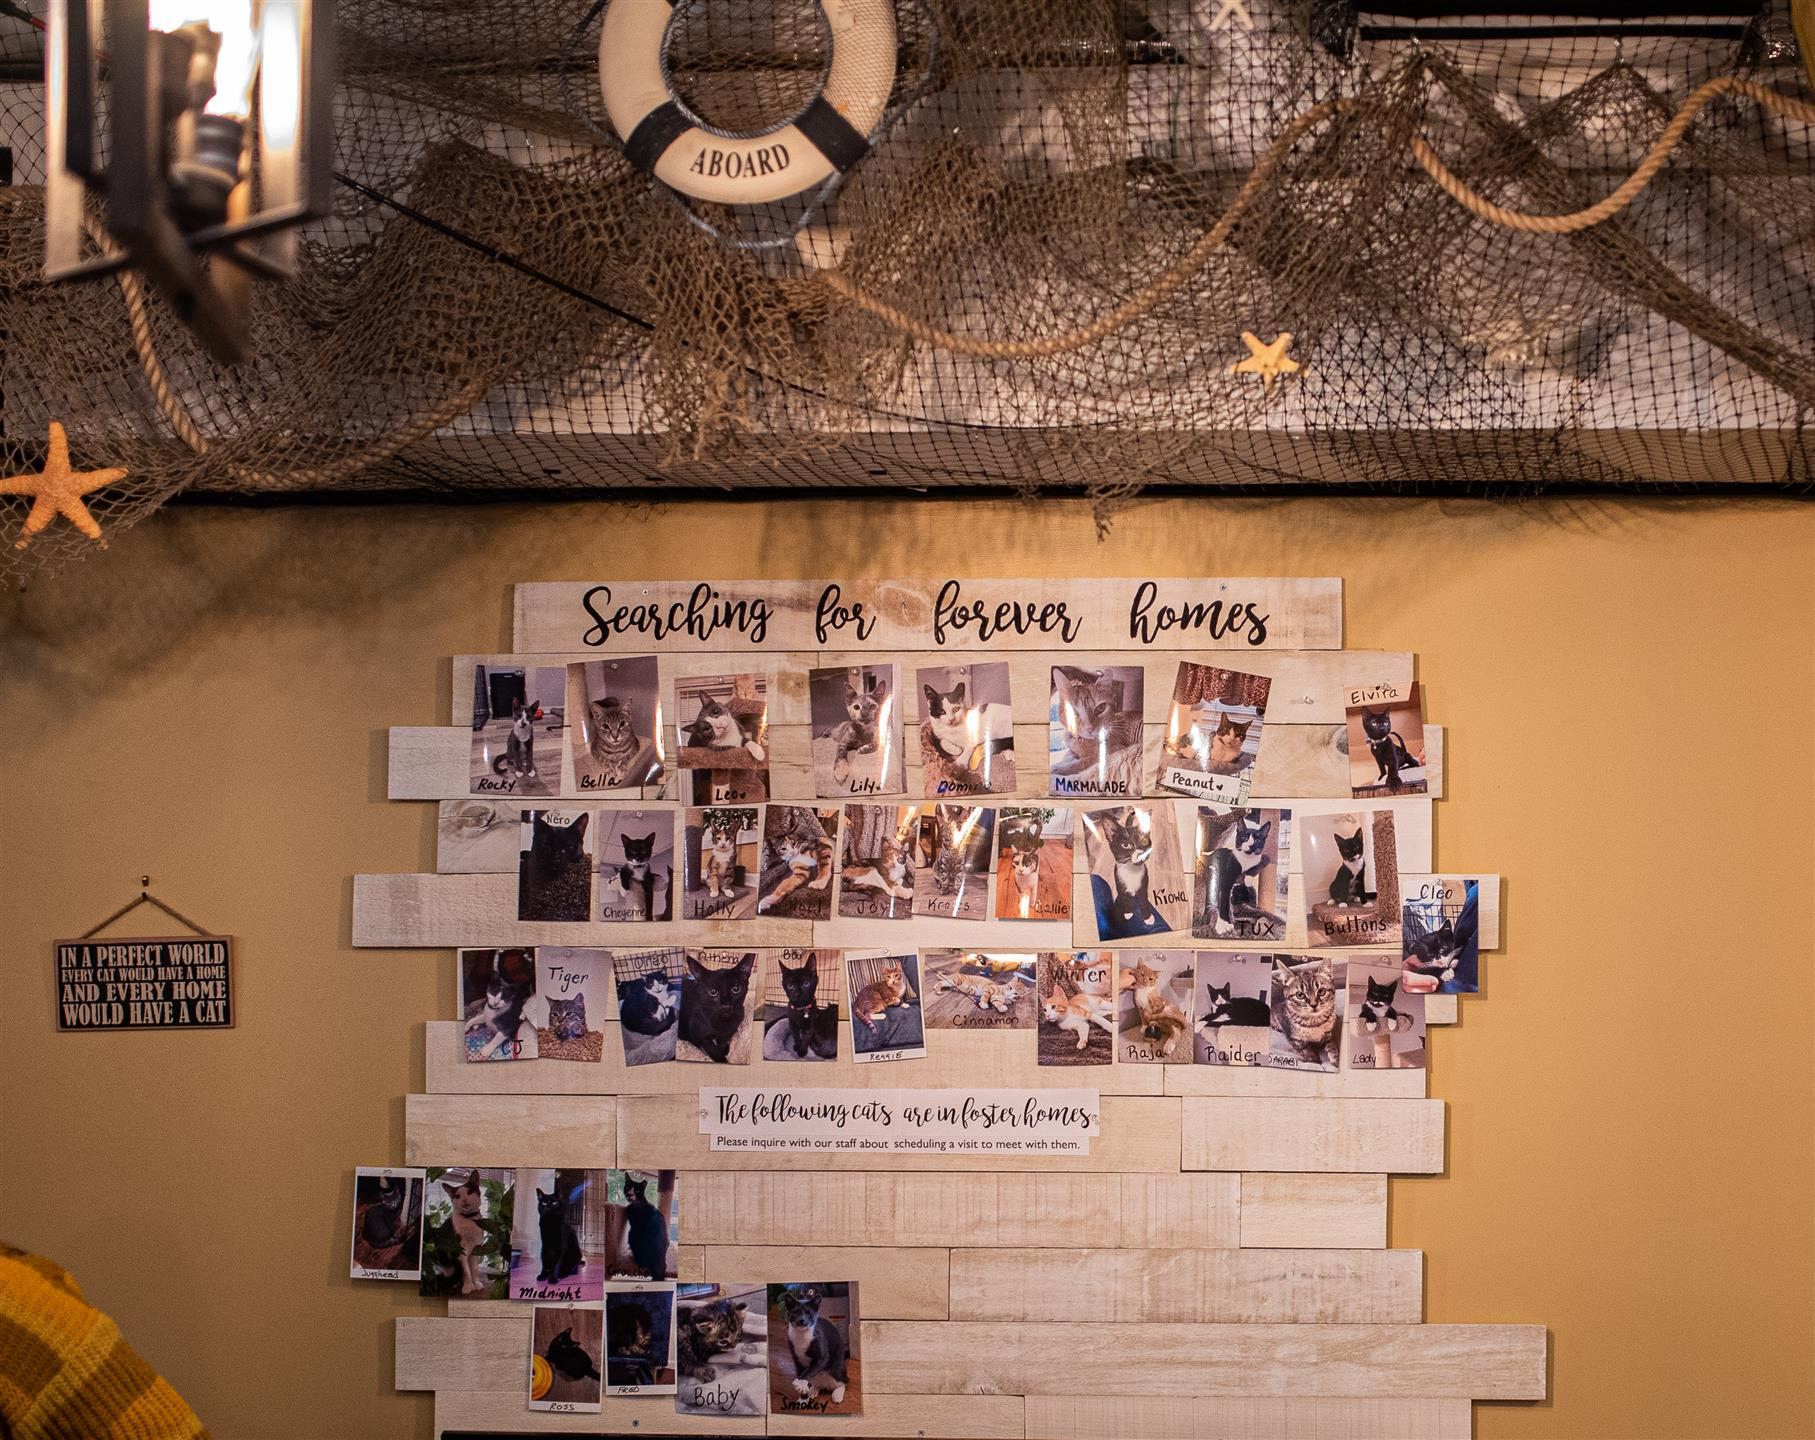 wall with photos of cats that are up for adoption